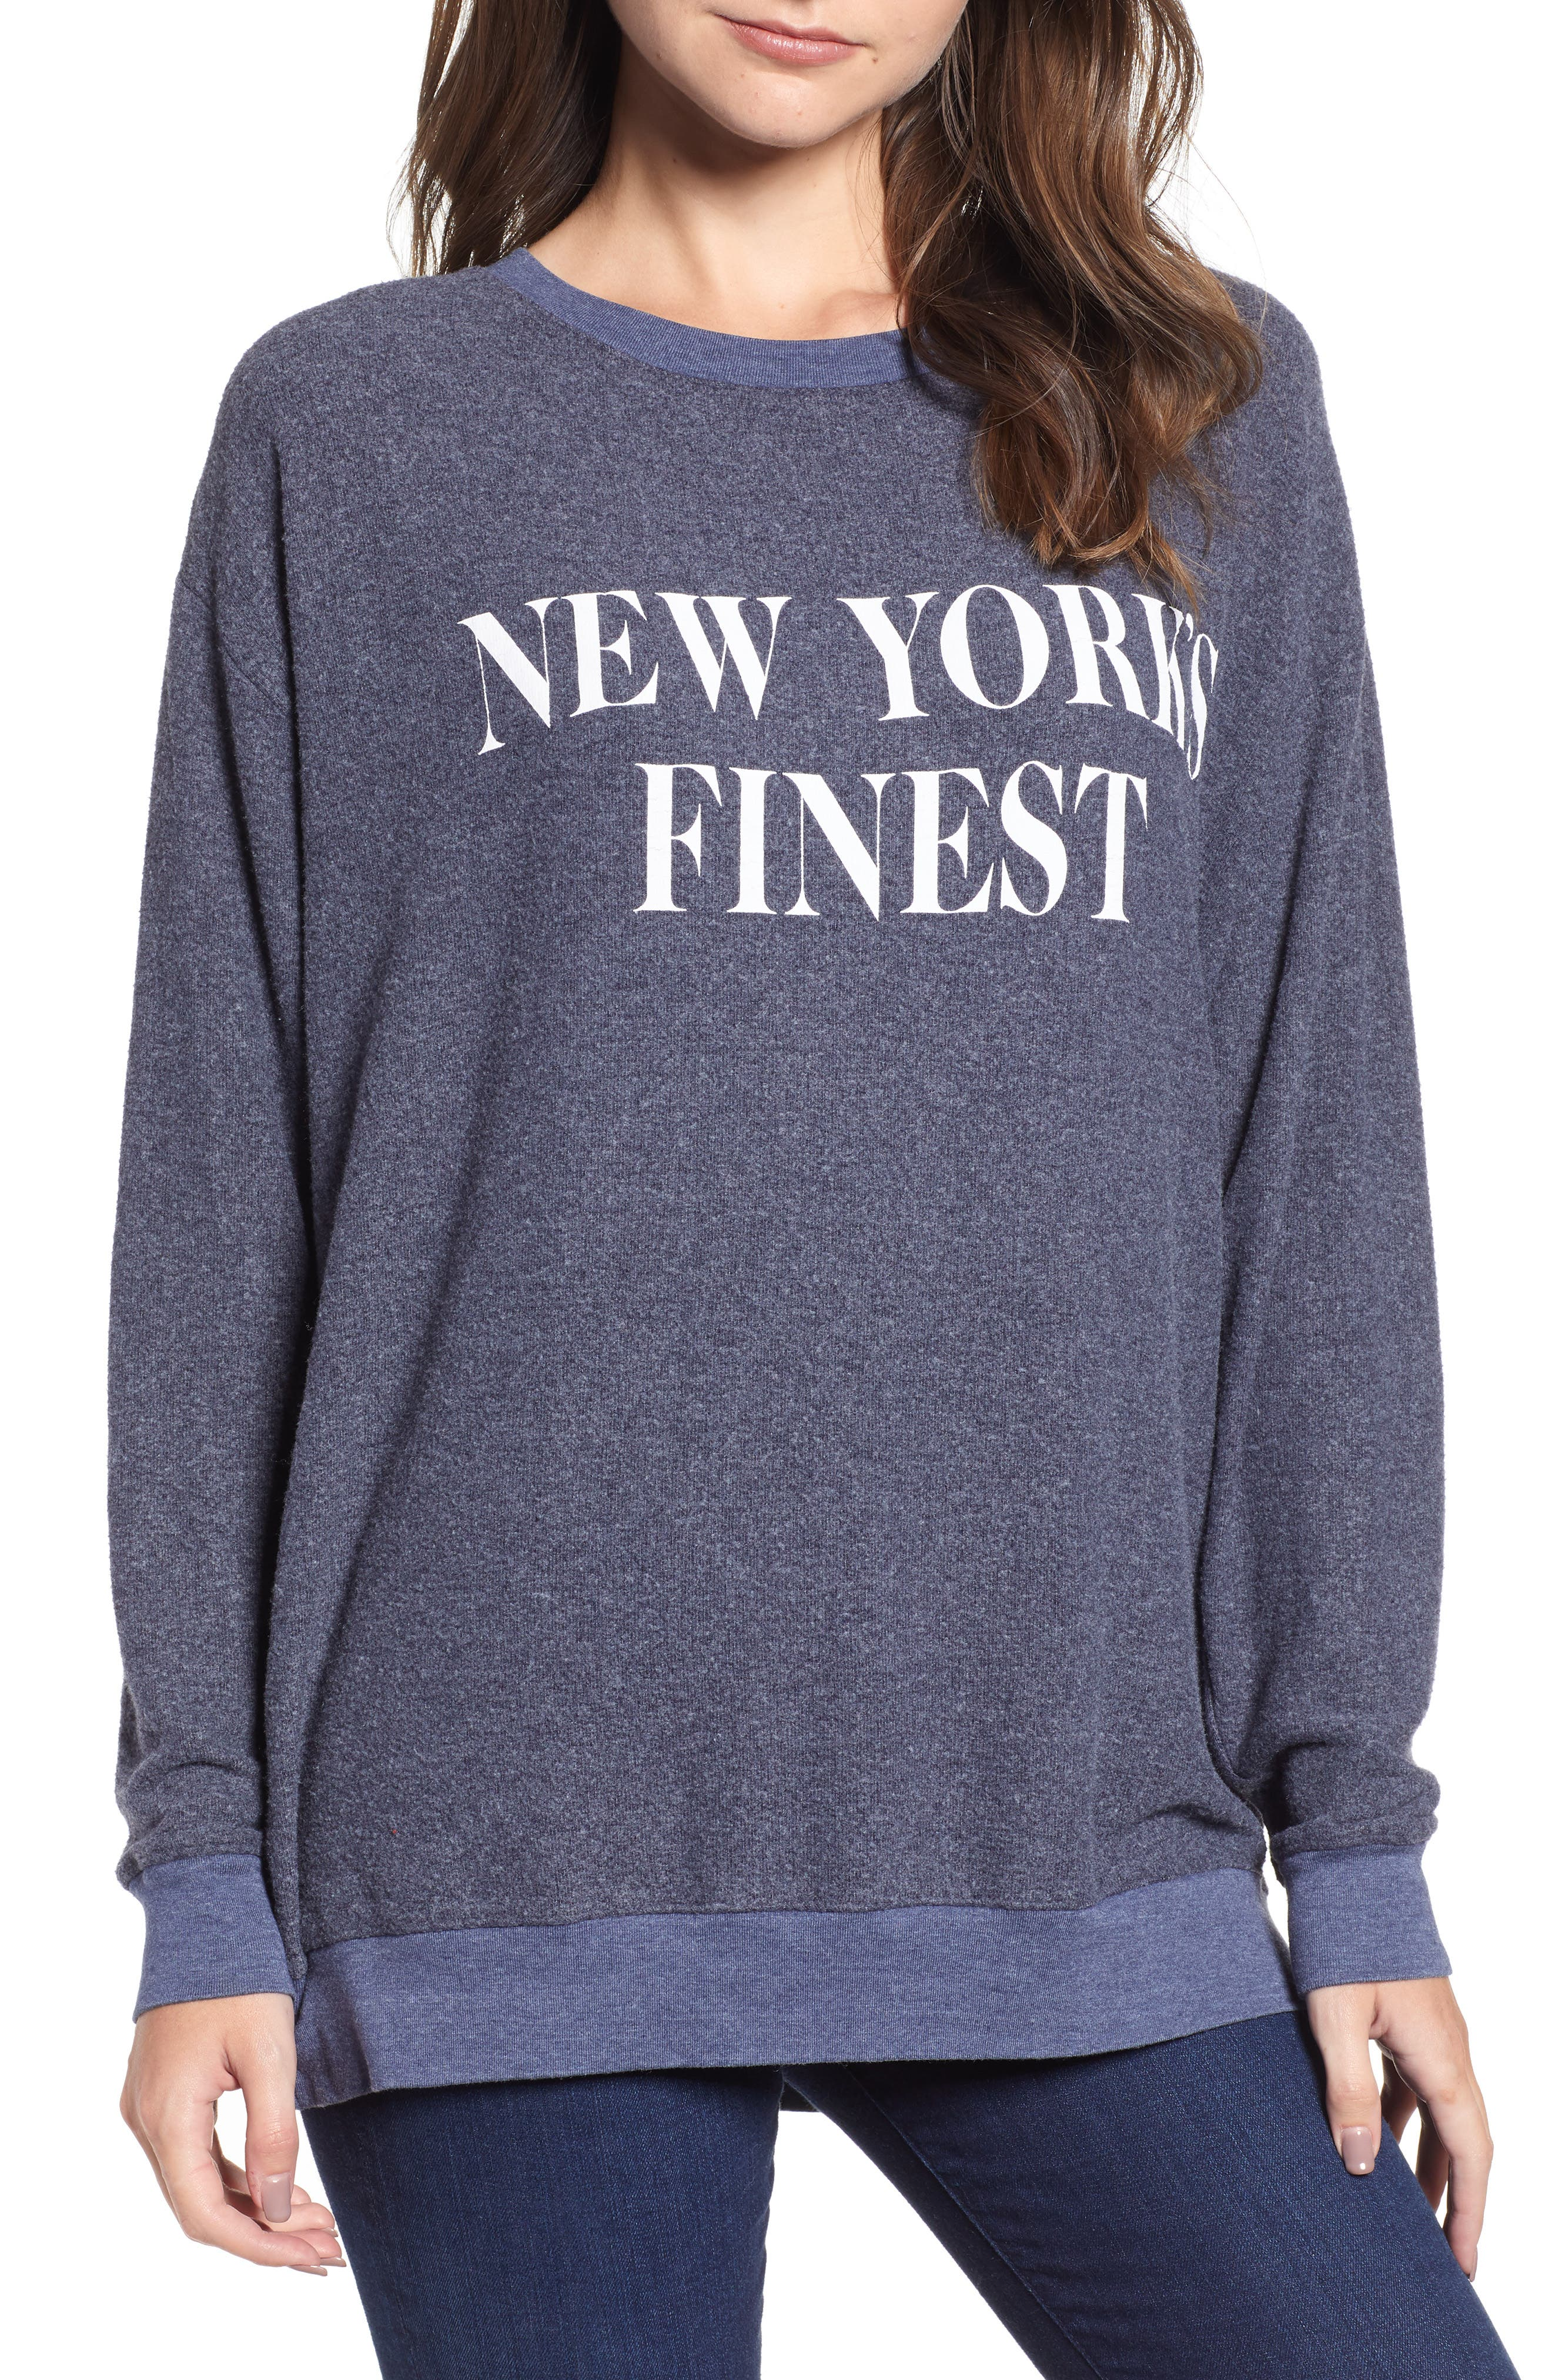 Roadtrip - New York's Finest Pullover,                         Main,                         color, 020